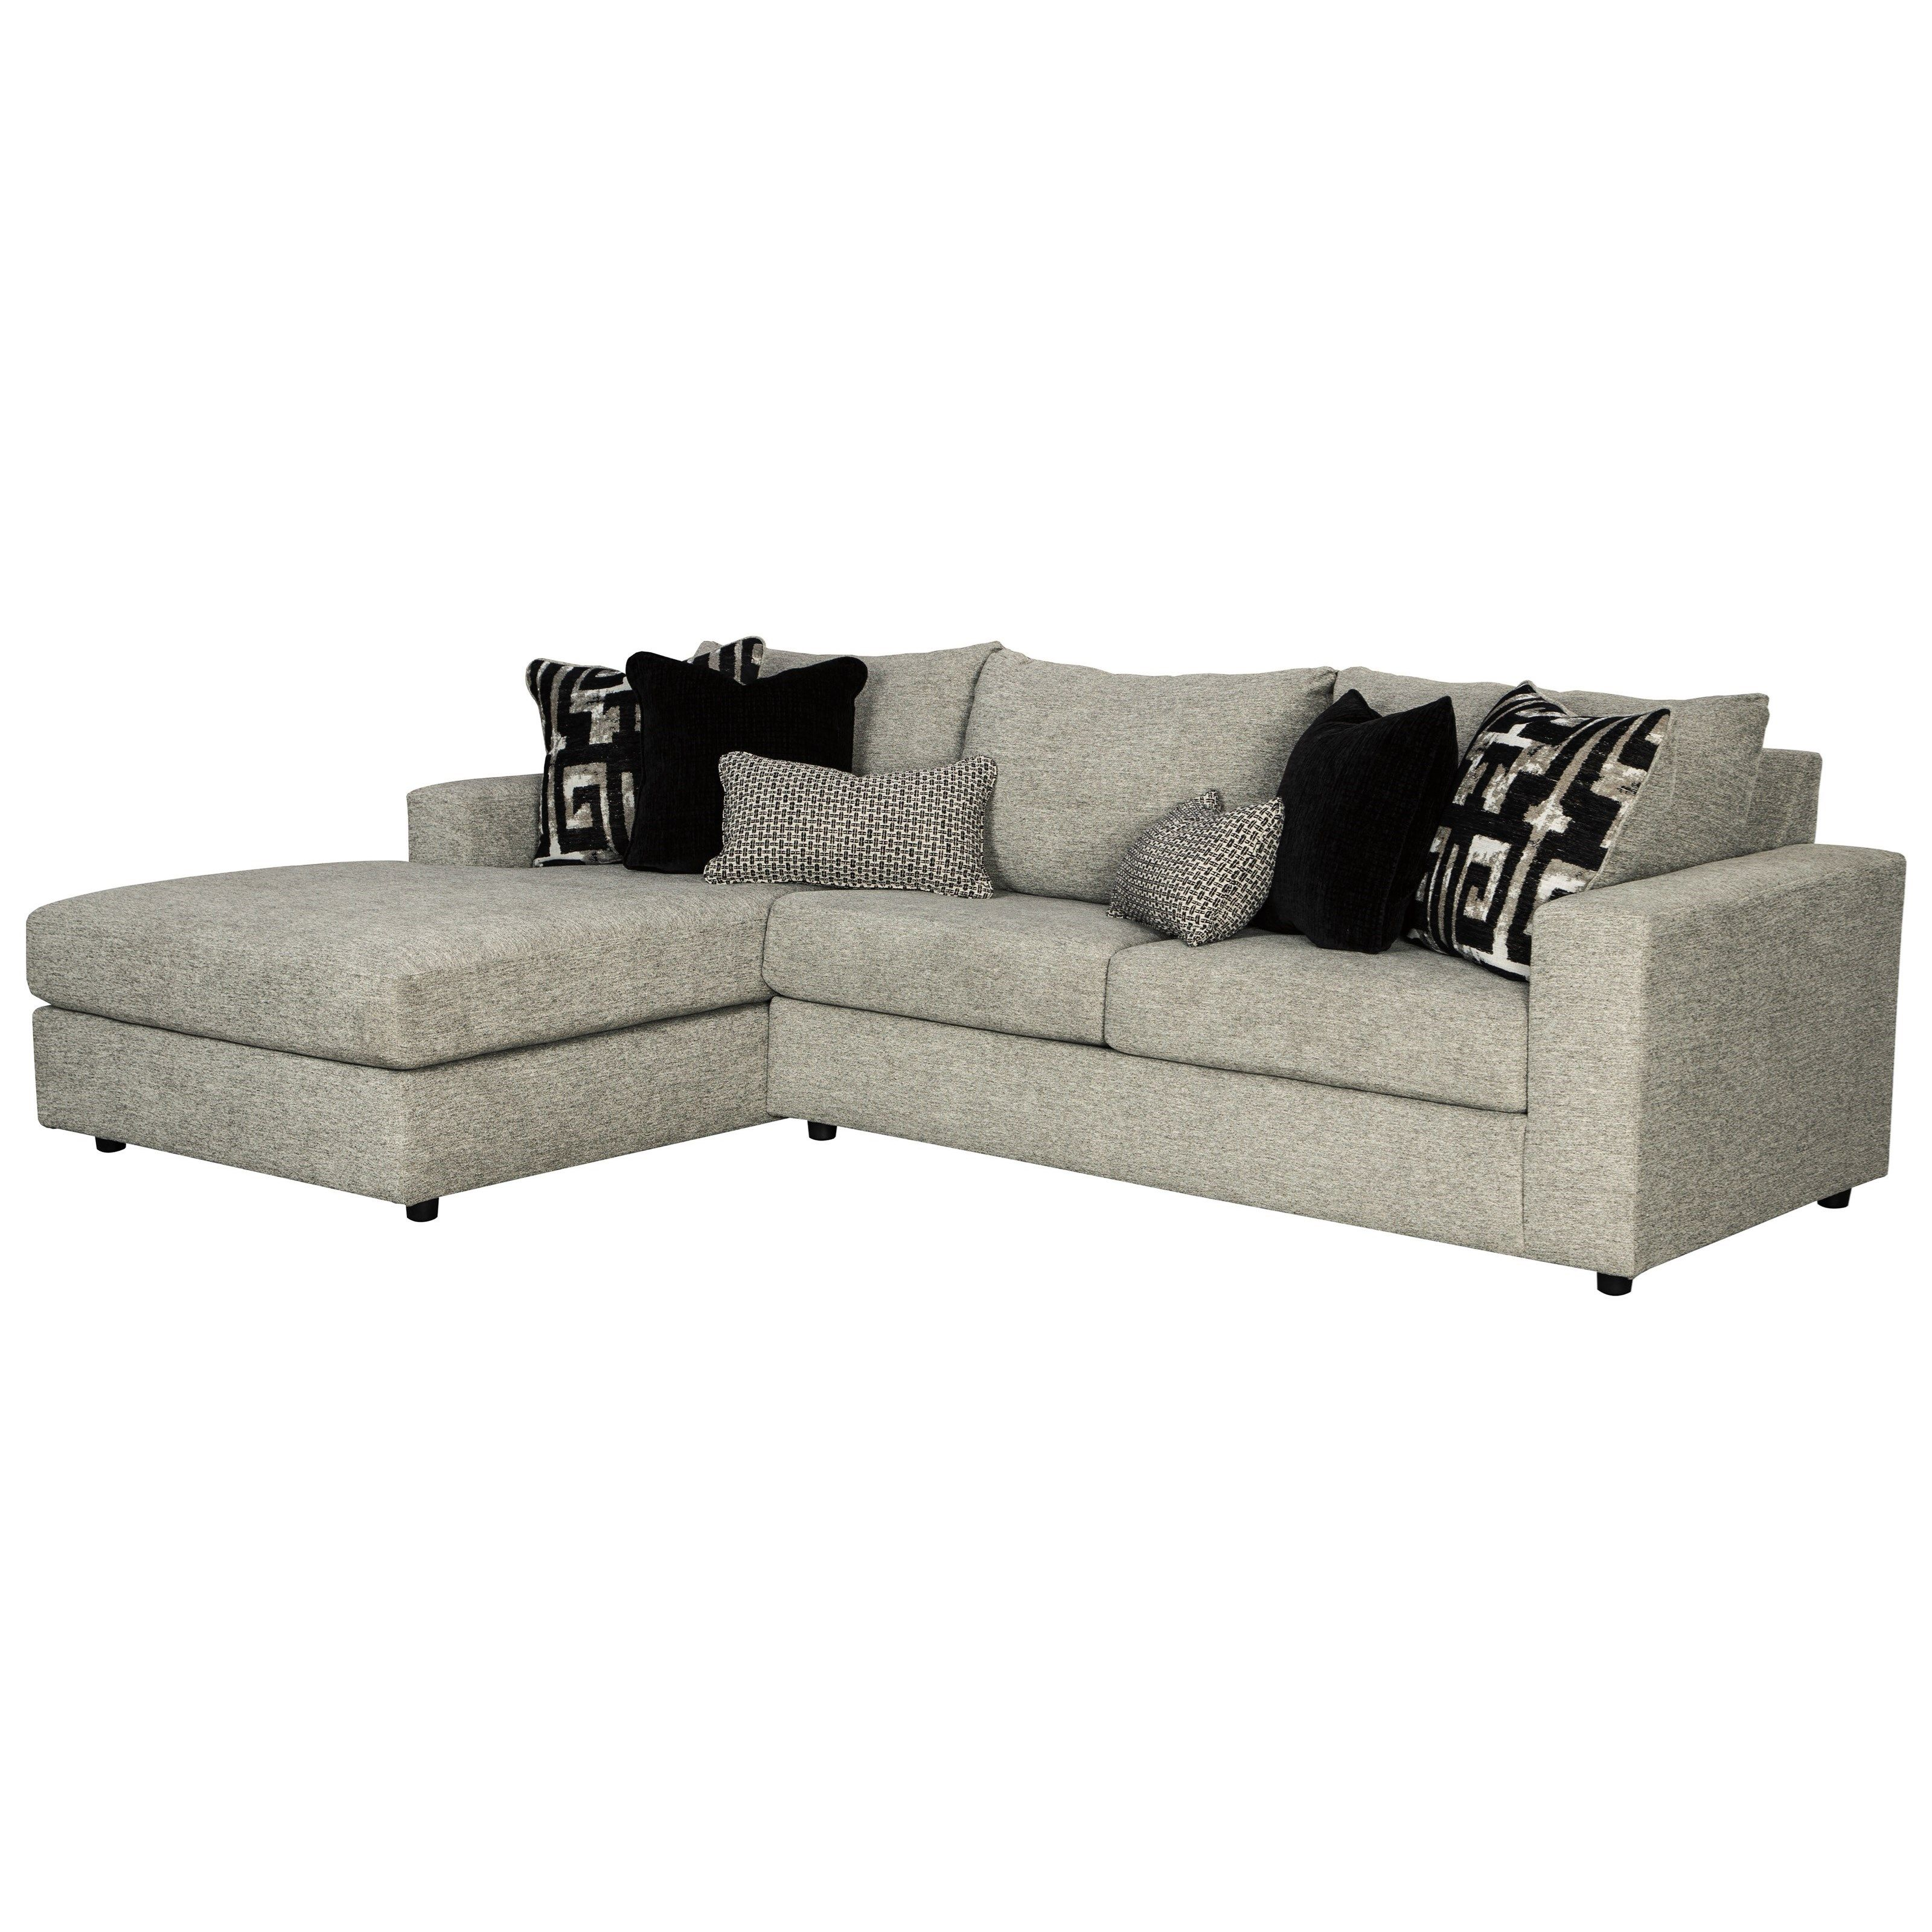 Ravenstone Sectional Sleeper By Signature Design By Ashley At